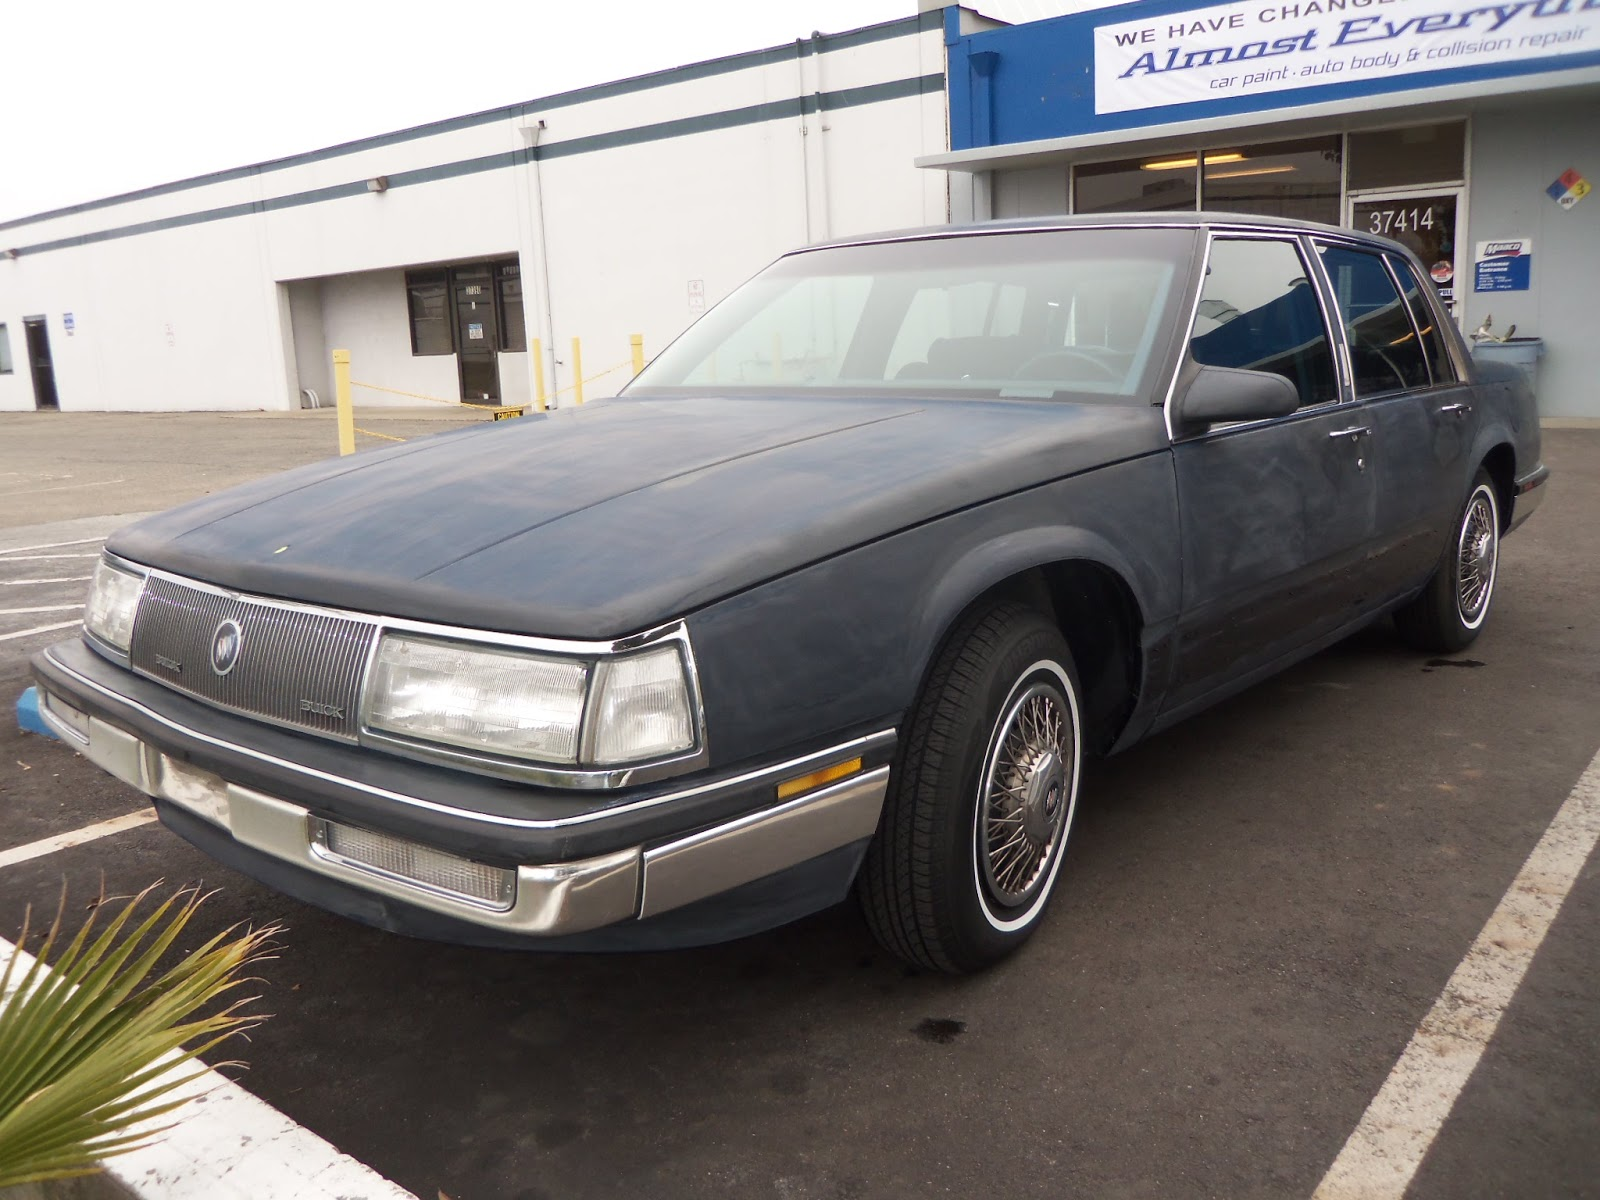 auto body collision repair car paint in fremont hayward union city san francisco bay 1989 buick color restoration 1989 buick color restoration